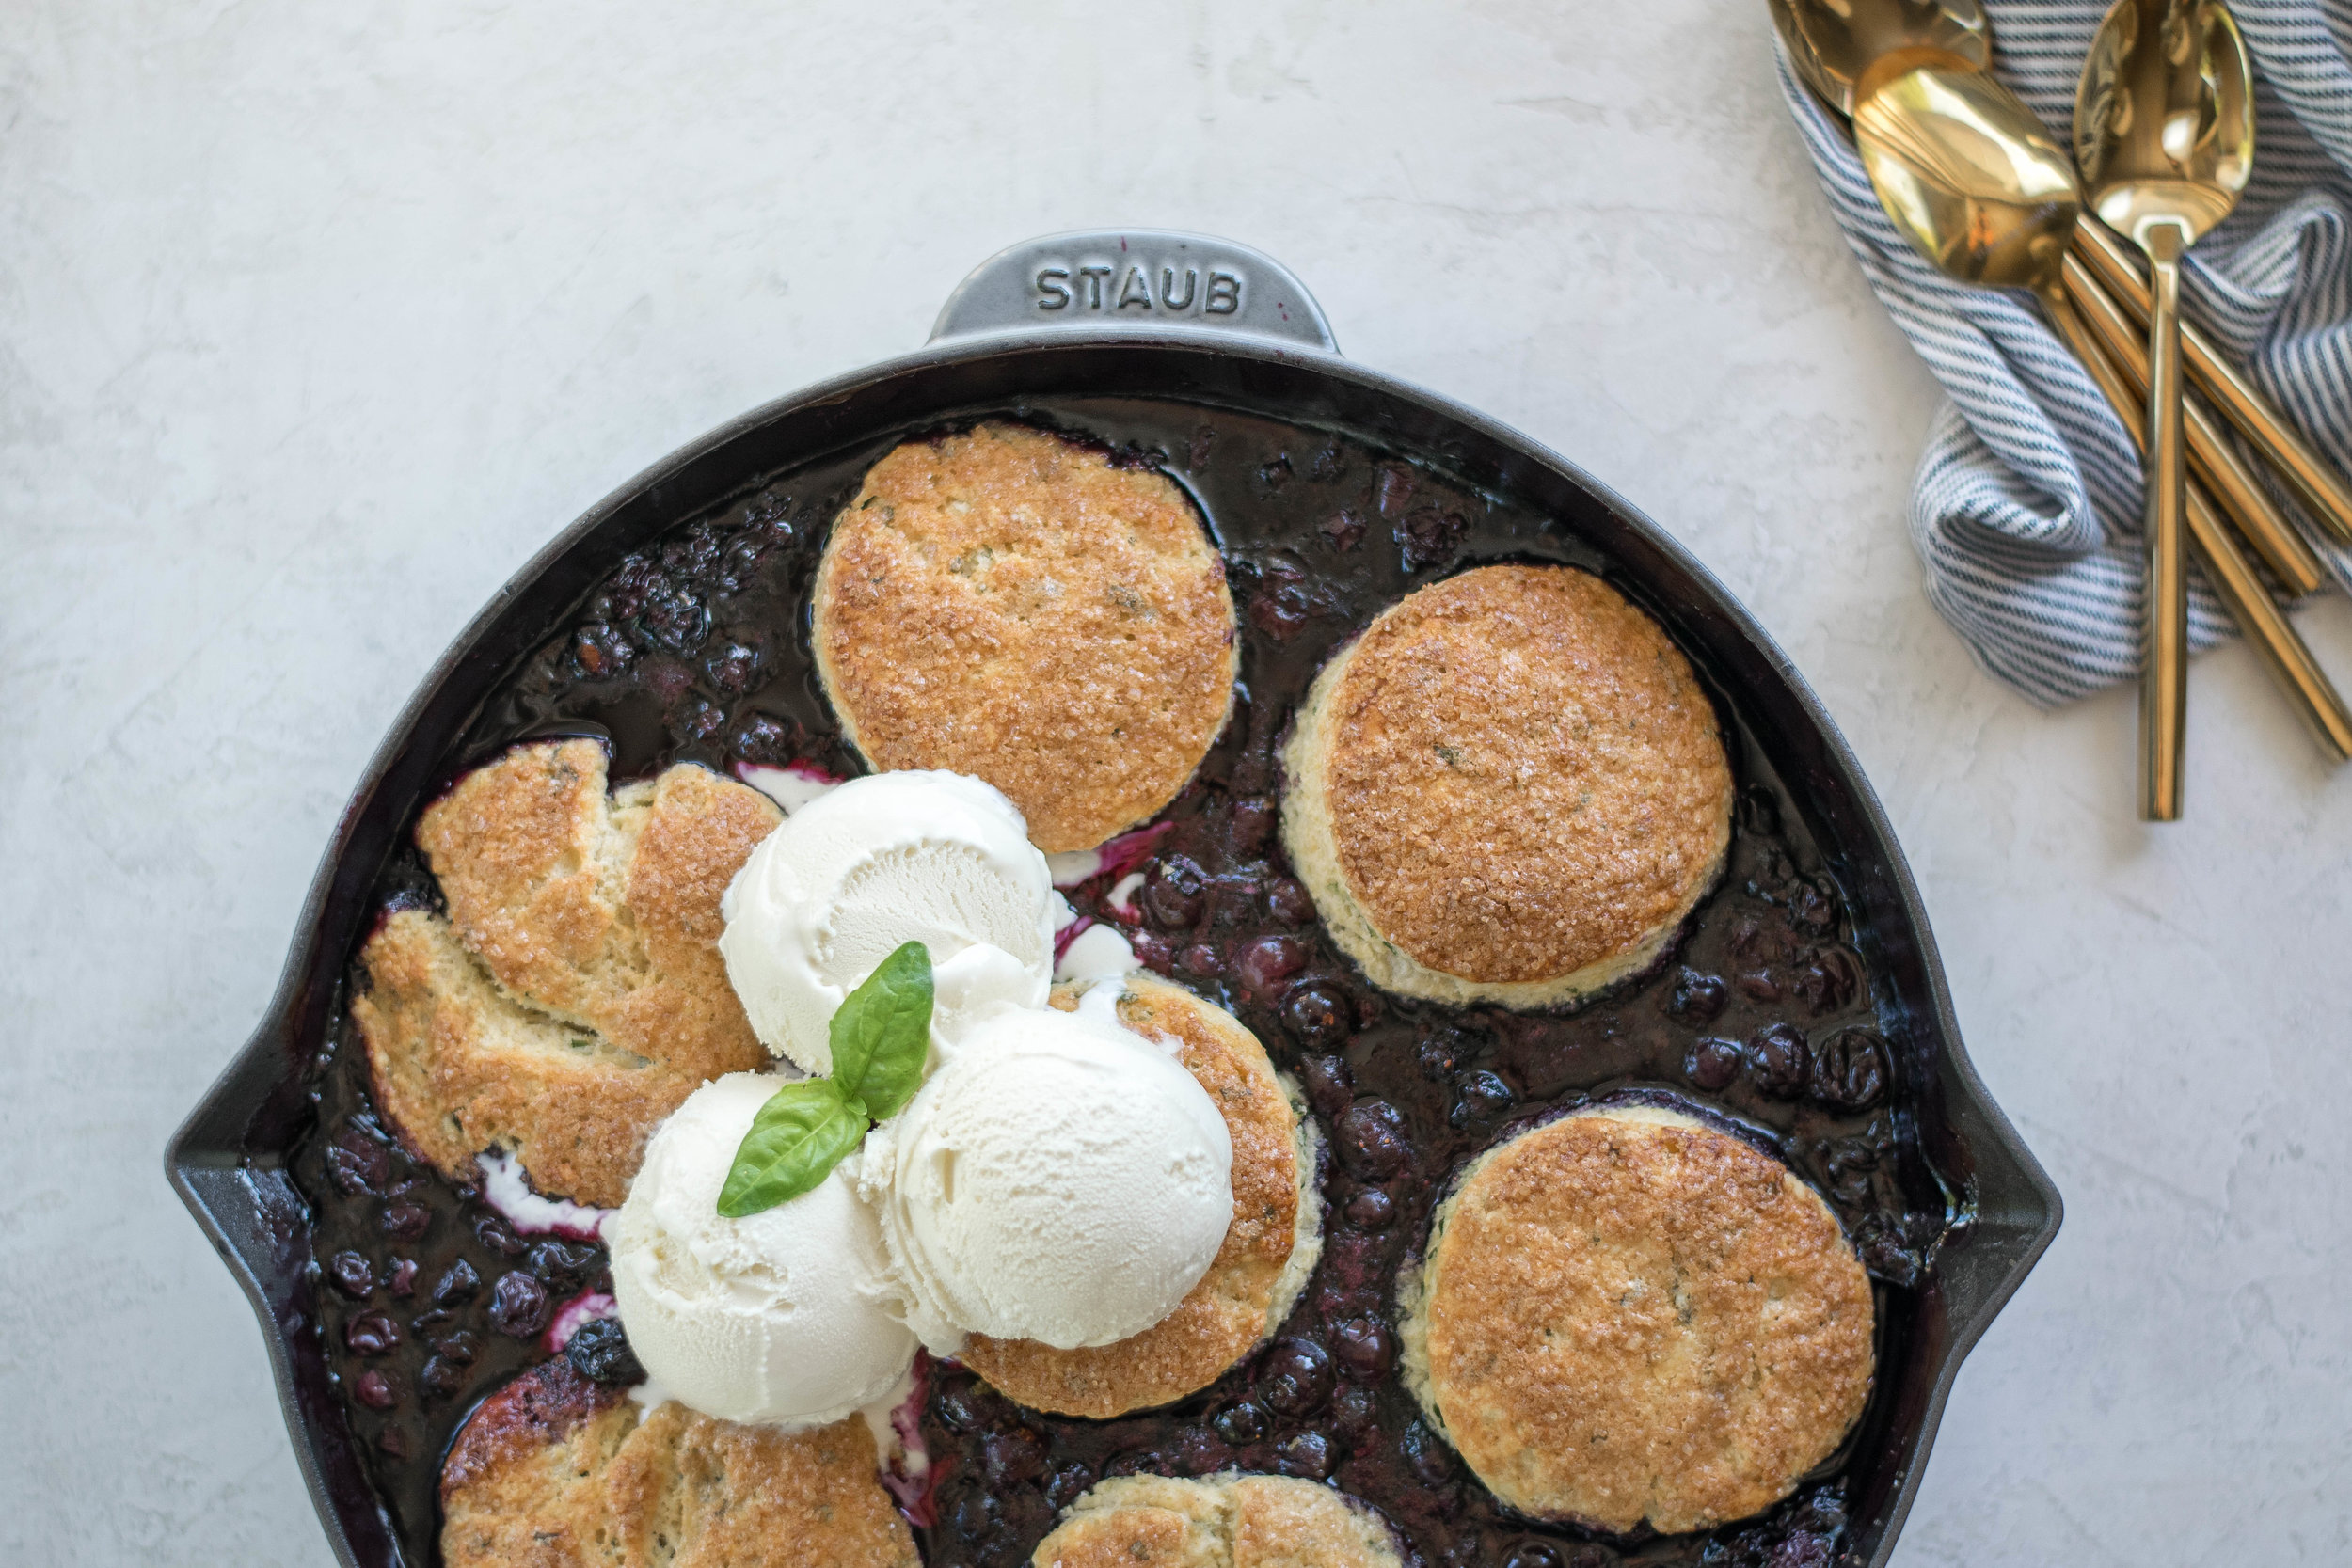 Blueberry Basil Skillet Cobbler with Cornbread Biscuits | All Purpose Flour Child